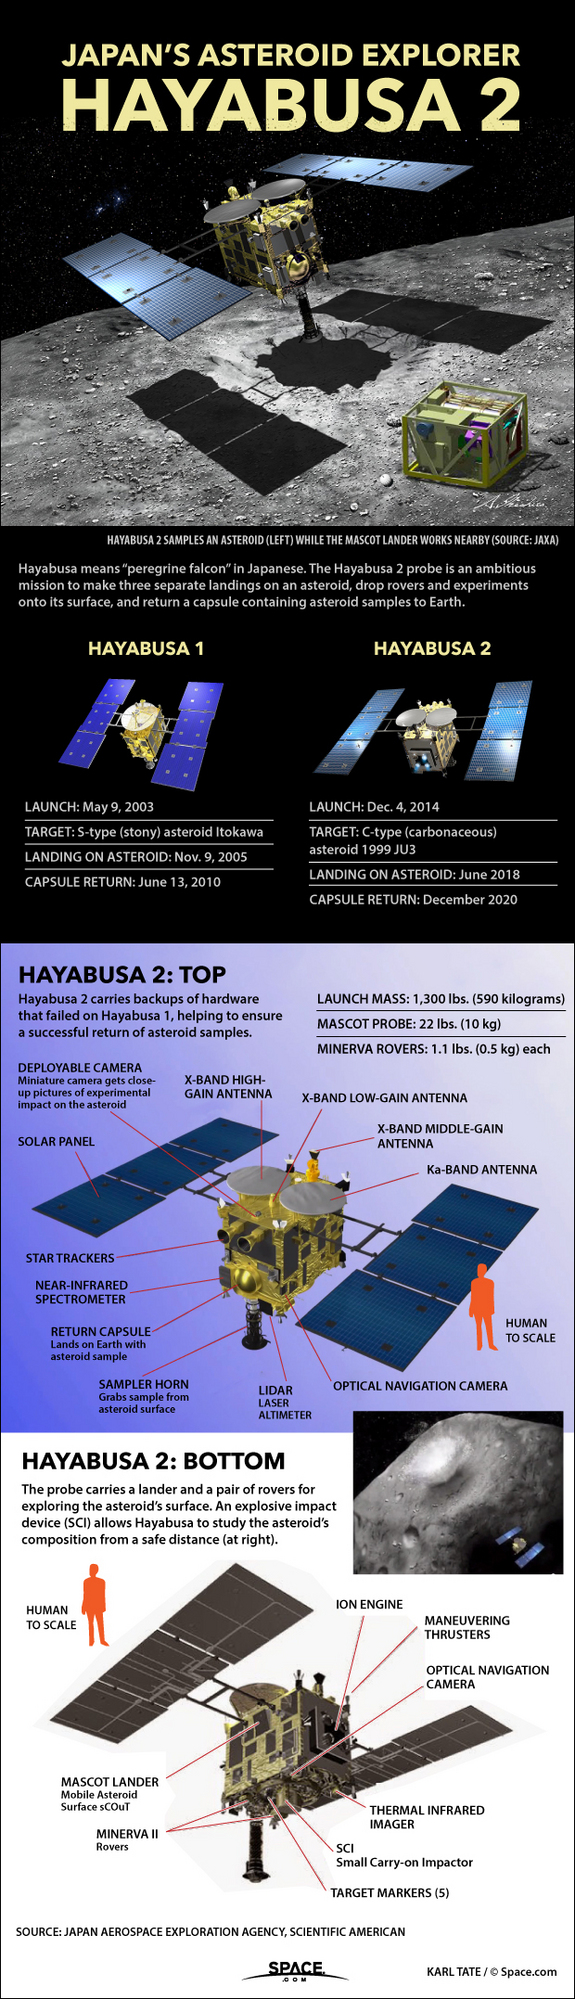 hayabusa2-japan-asteroid-probe-141202c-02_081214